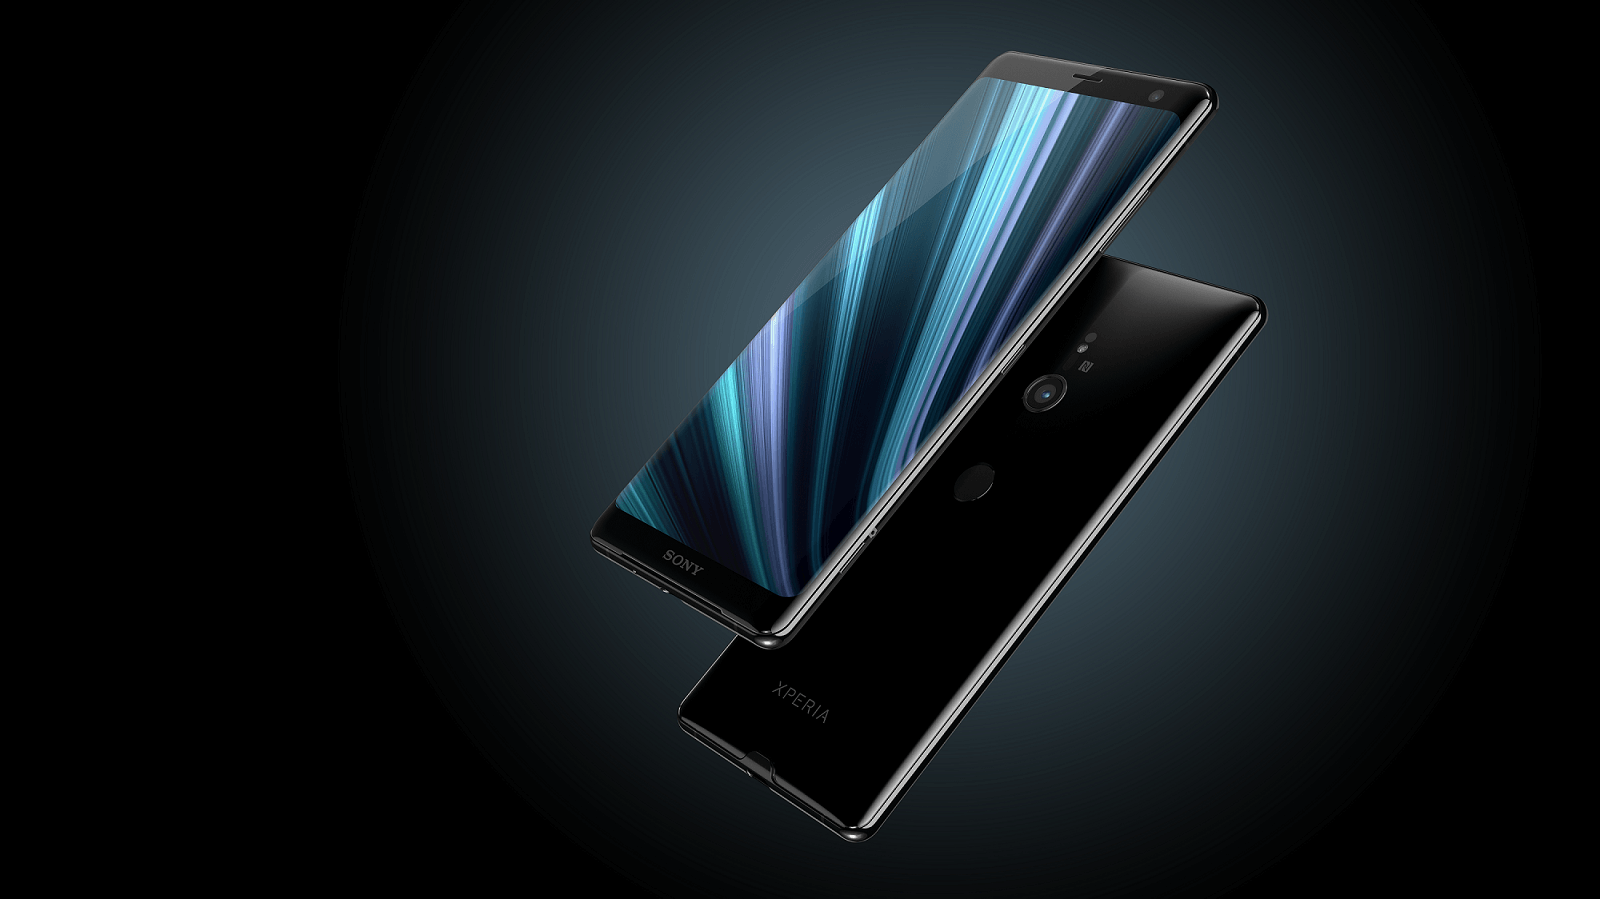 Sony unveils flagship Xperia XZ3 with 6-inch wraparound display